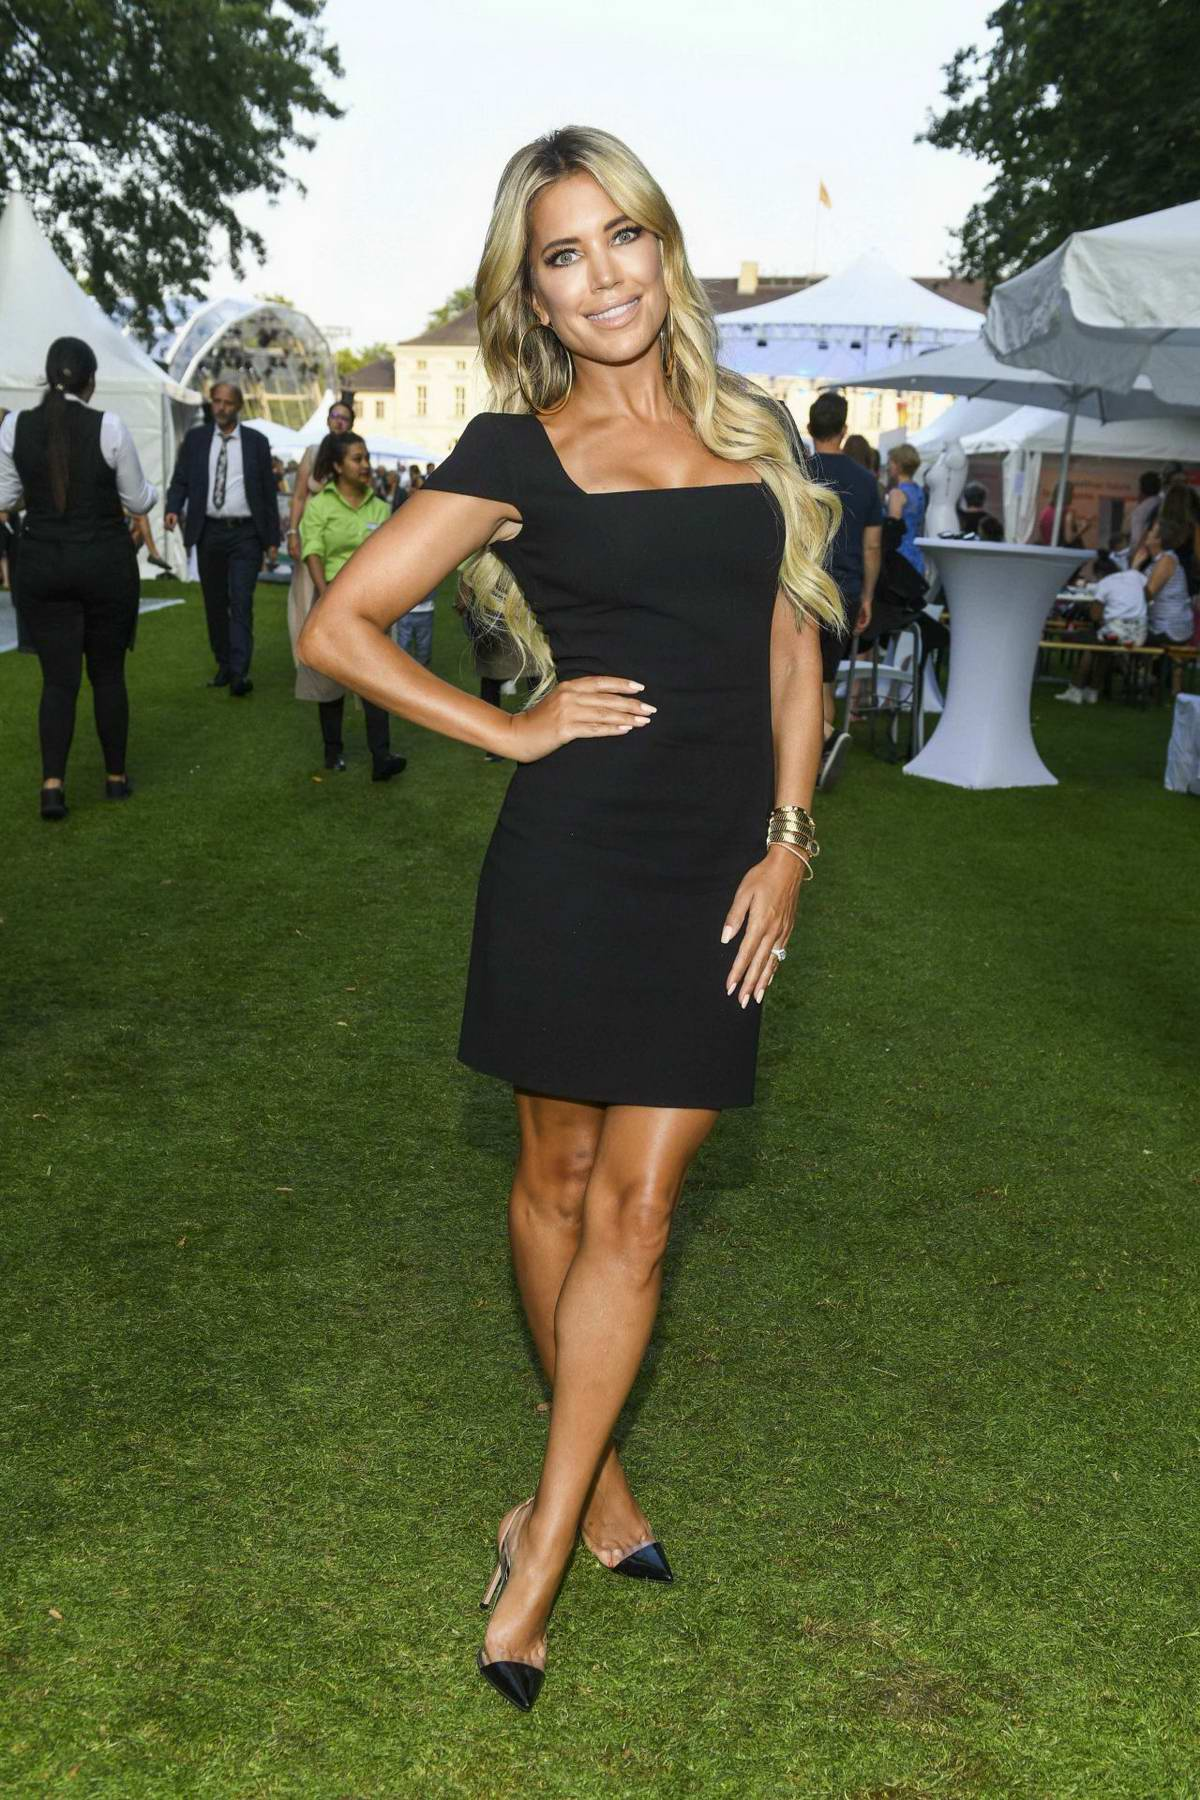 Sylvie Meis attends the Citizens' Party of the Federal President at Schloss Bellevue in Berlin, Germany